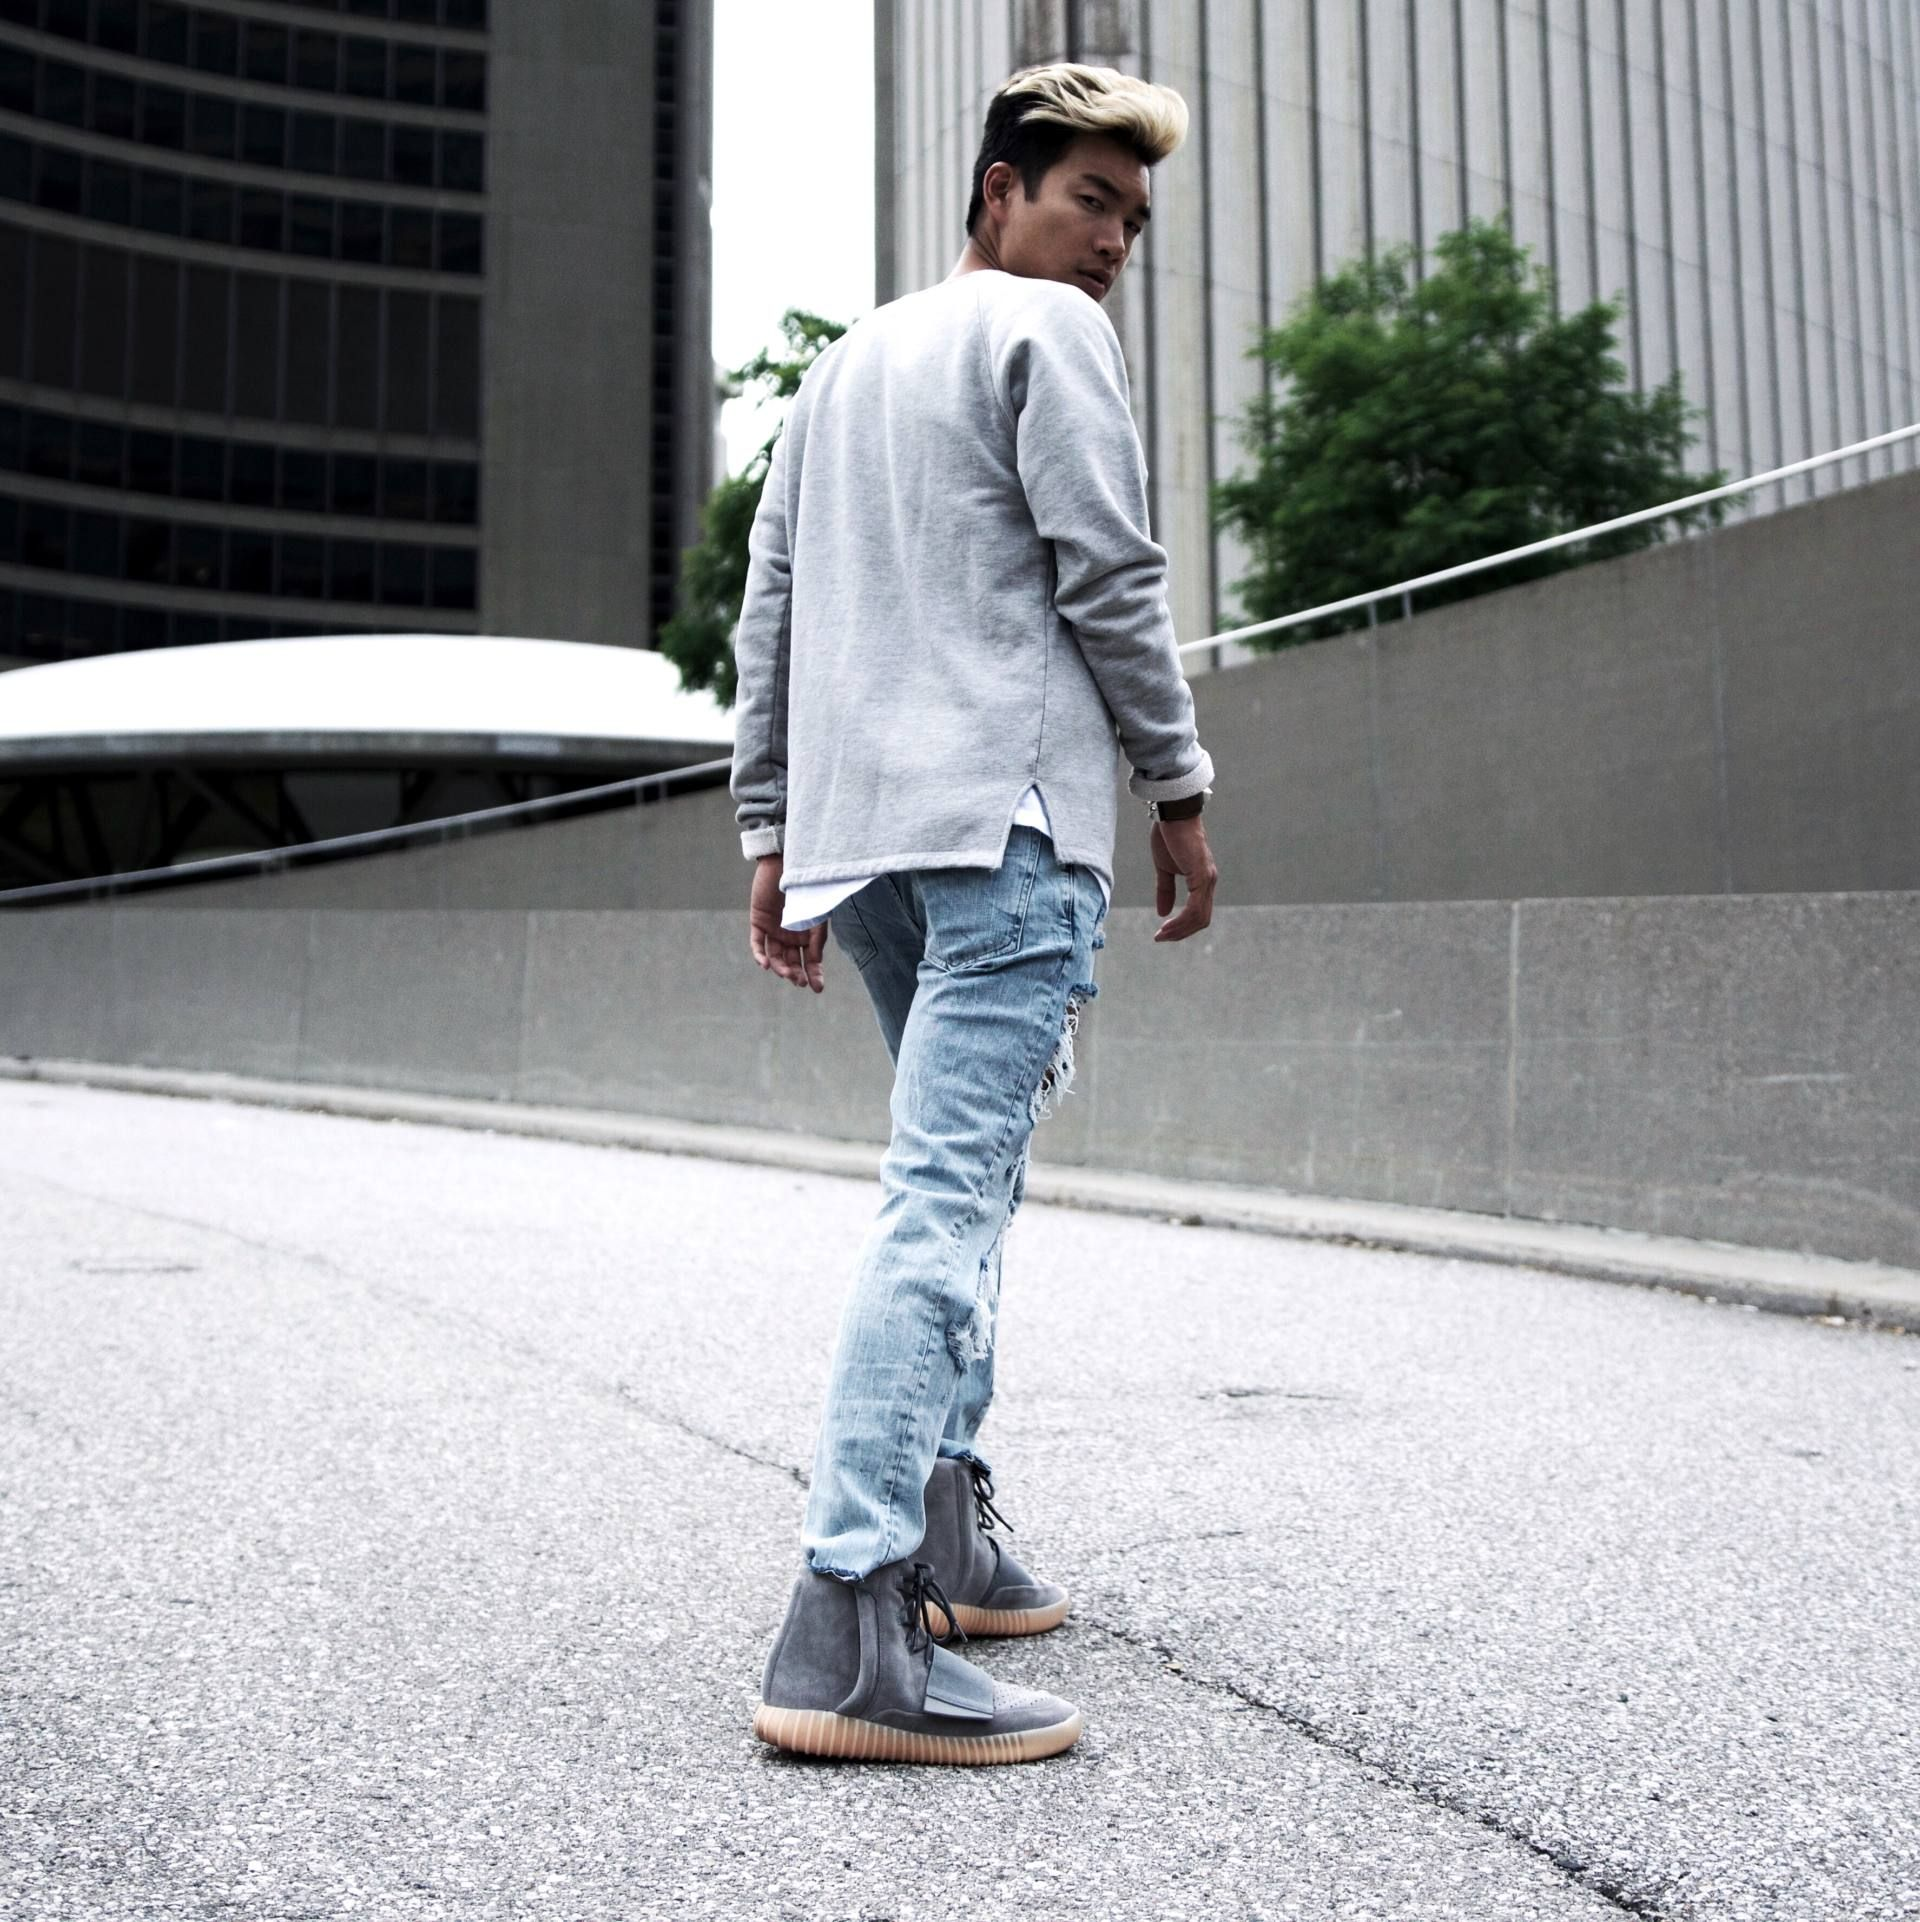 d7b9709ba0bae yeezy boost 750 outfit